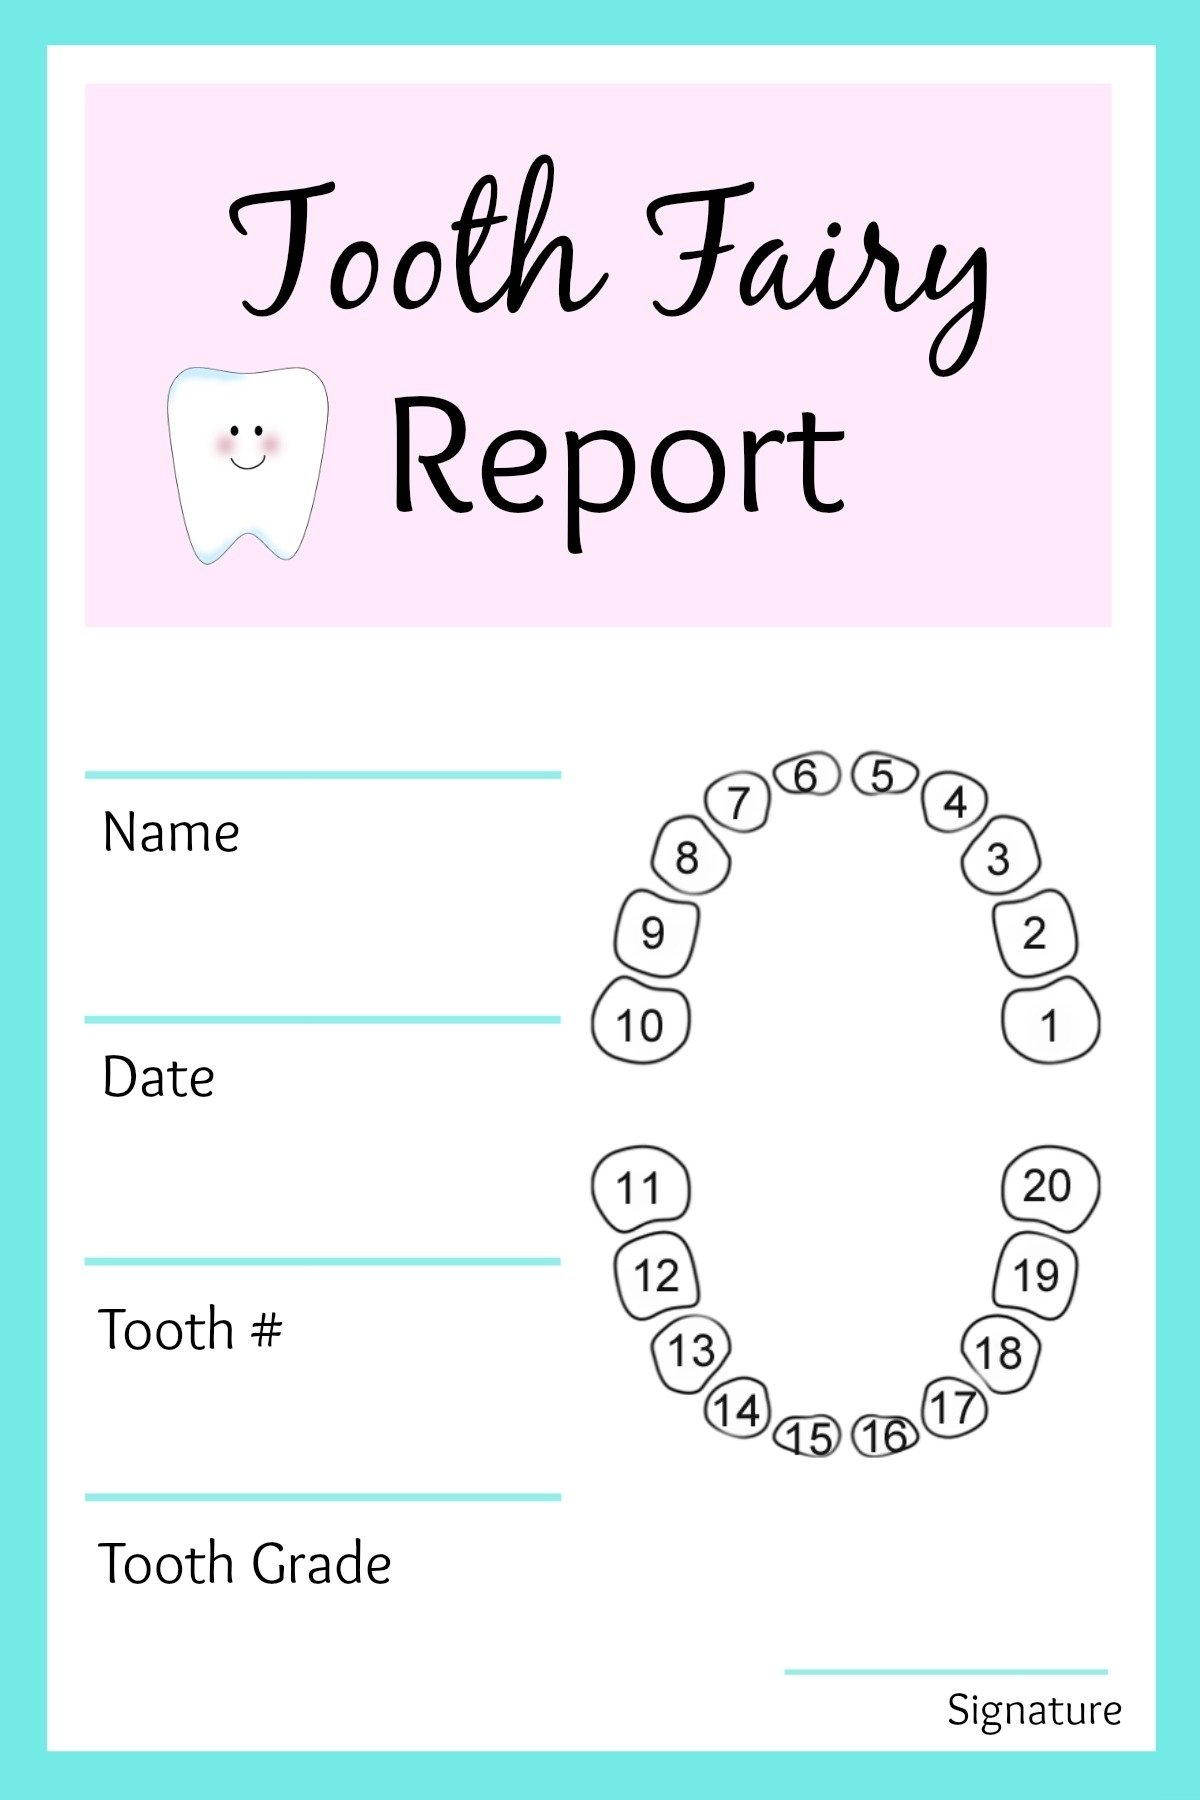 10 Elegant Tooth Fairy Ideas For First Tooth easy tooth fairy ideas tips for parents free printables 2020